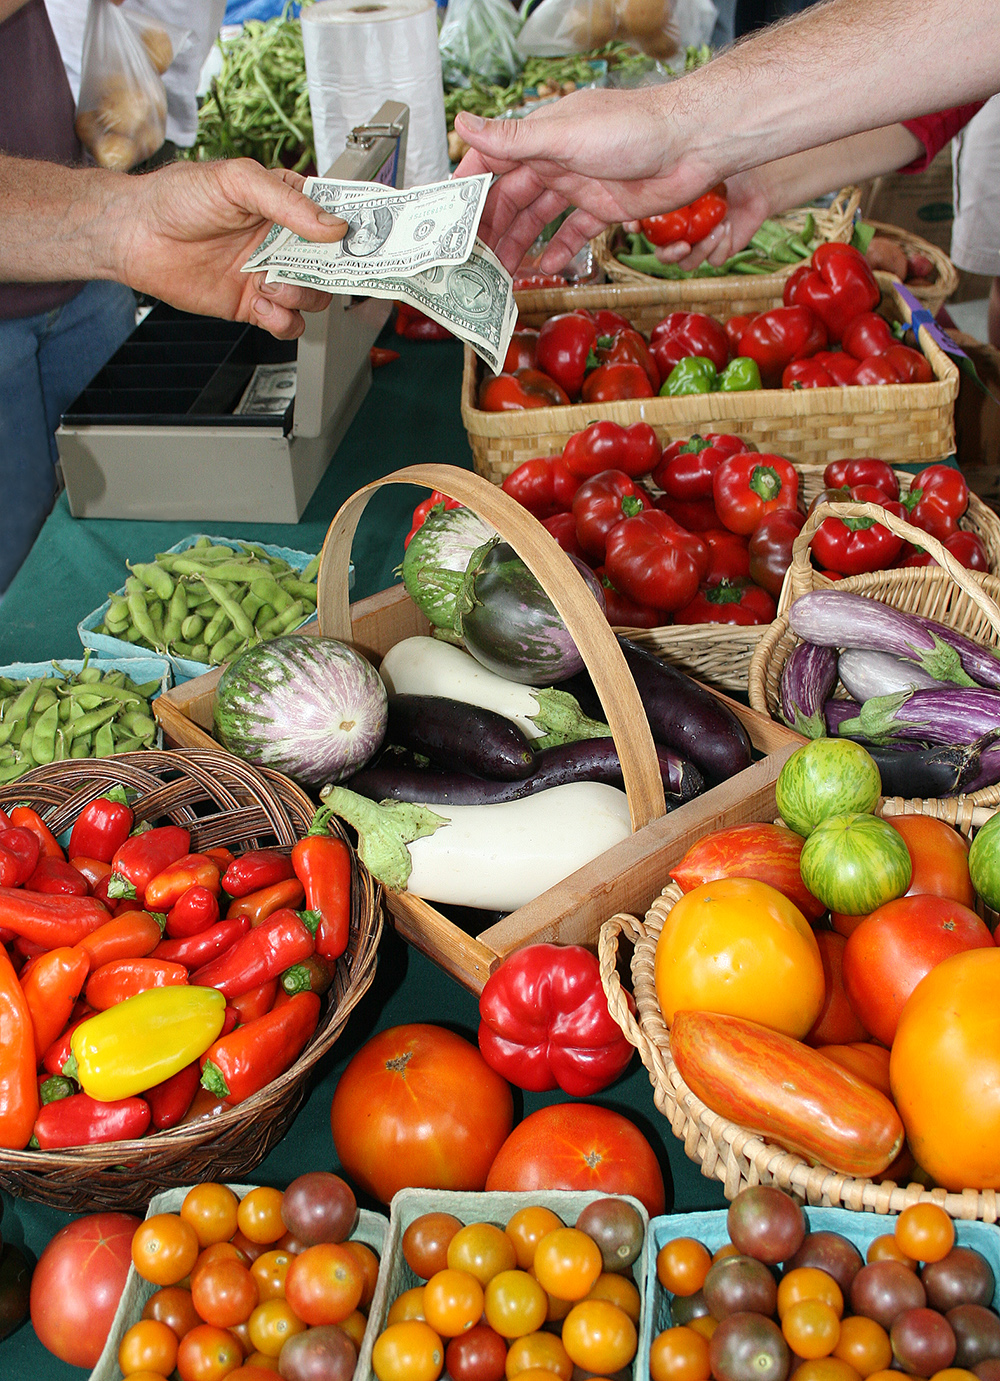 Image of local produce at the farmers' market